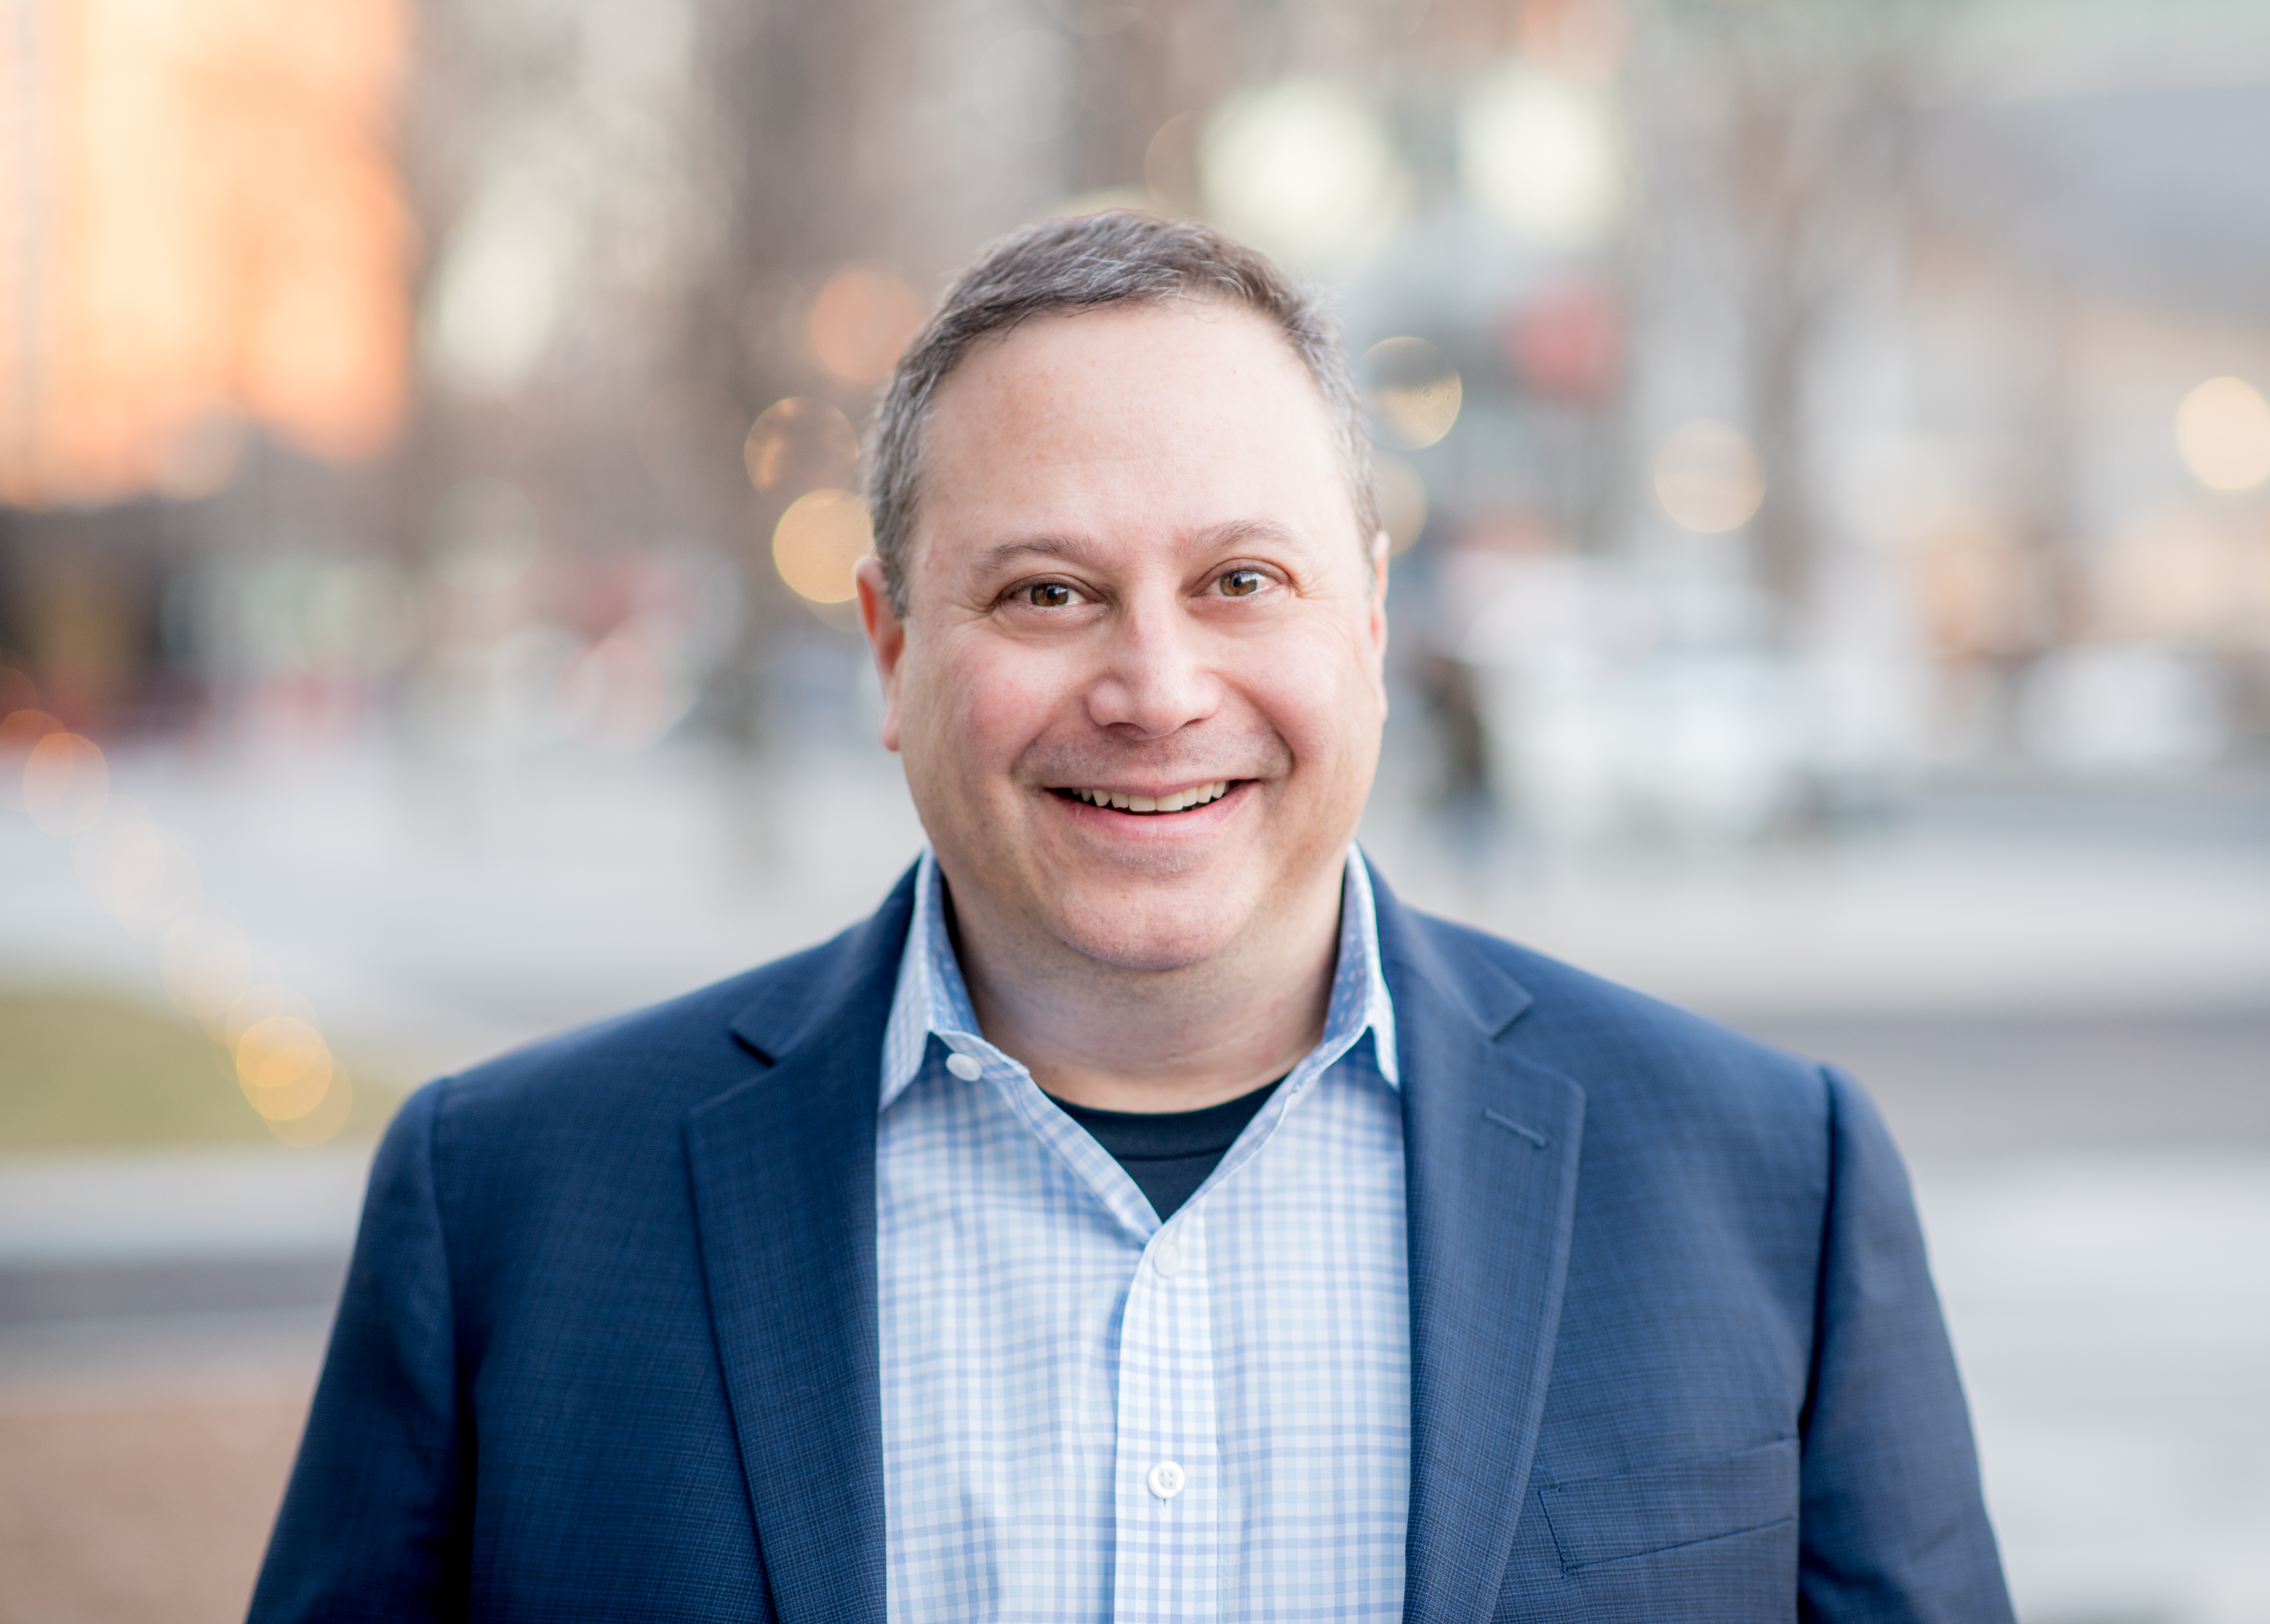 Brian Heller outsourced attorney Washington D.C.